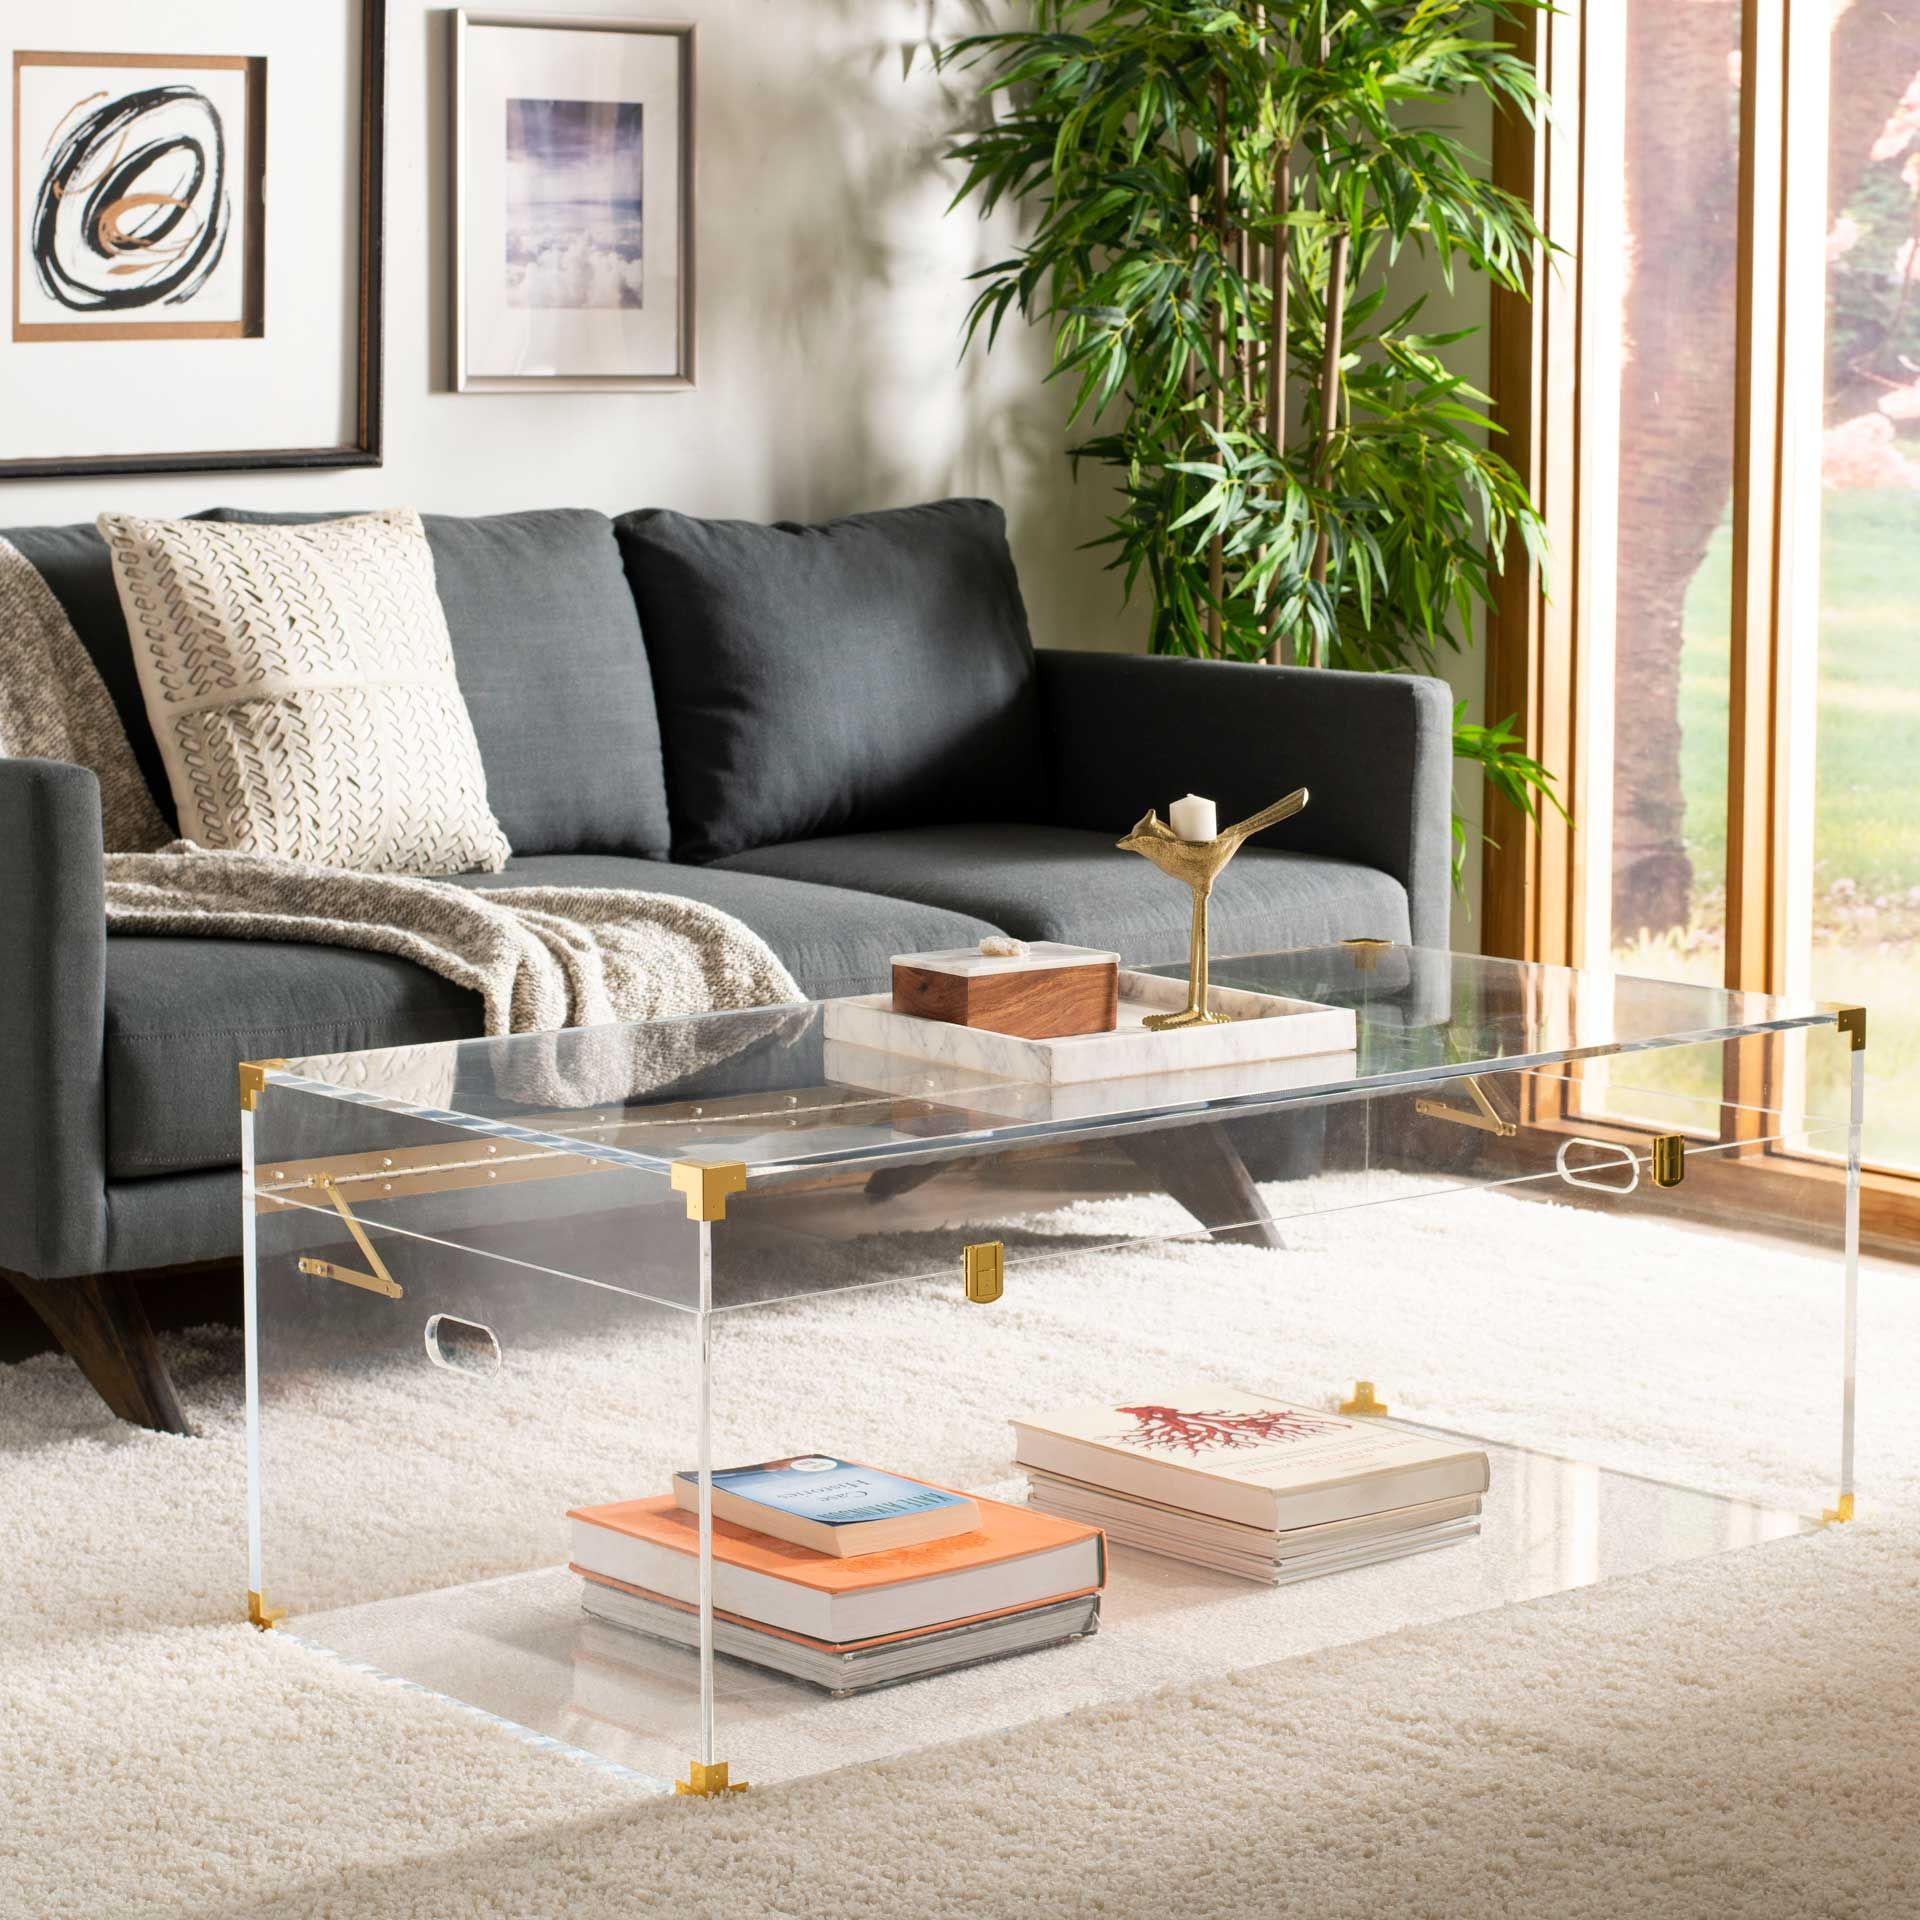 Isabel Acrylic Trunk Coffee Table Clear Brass In 2021 Acrylic Coffee Table Coffee Table Coffee Table Trunk [ 1920 x 1920 Pixel ]